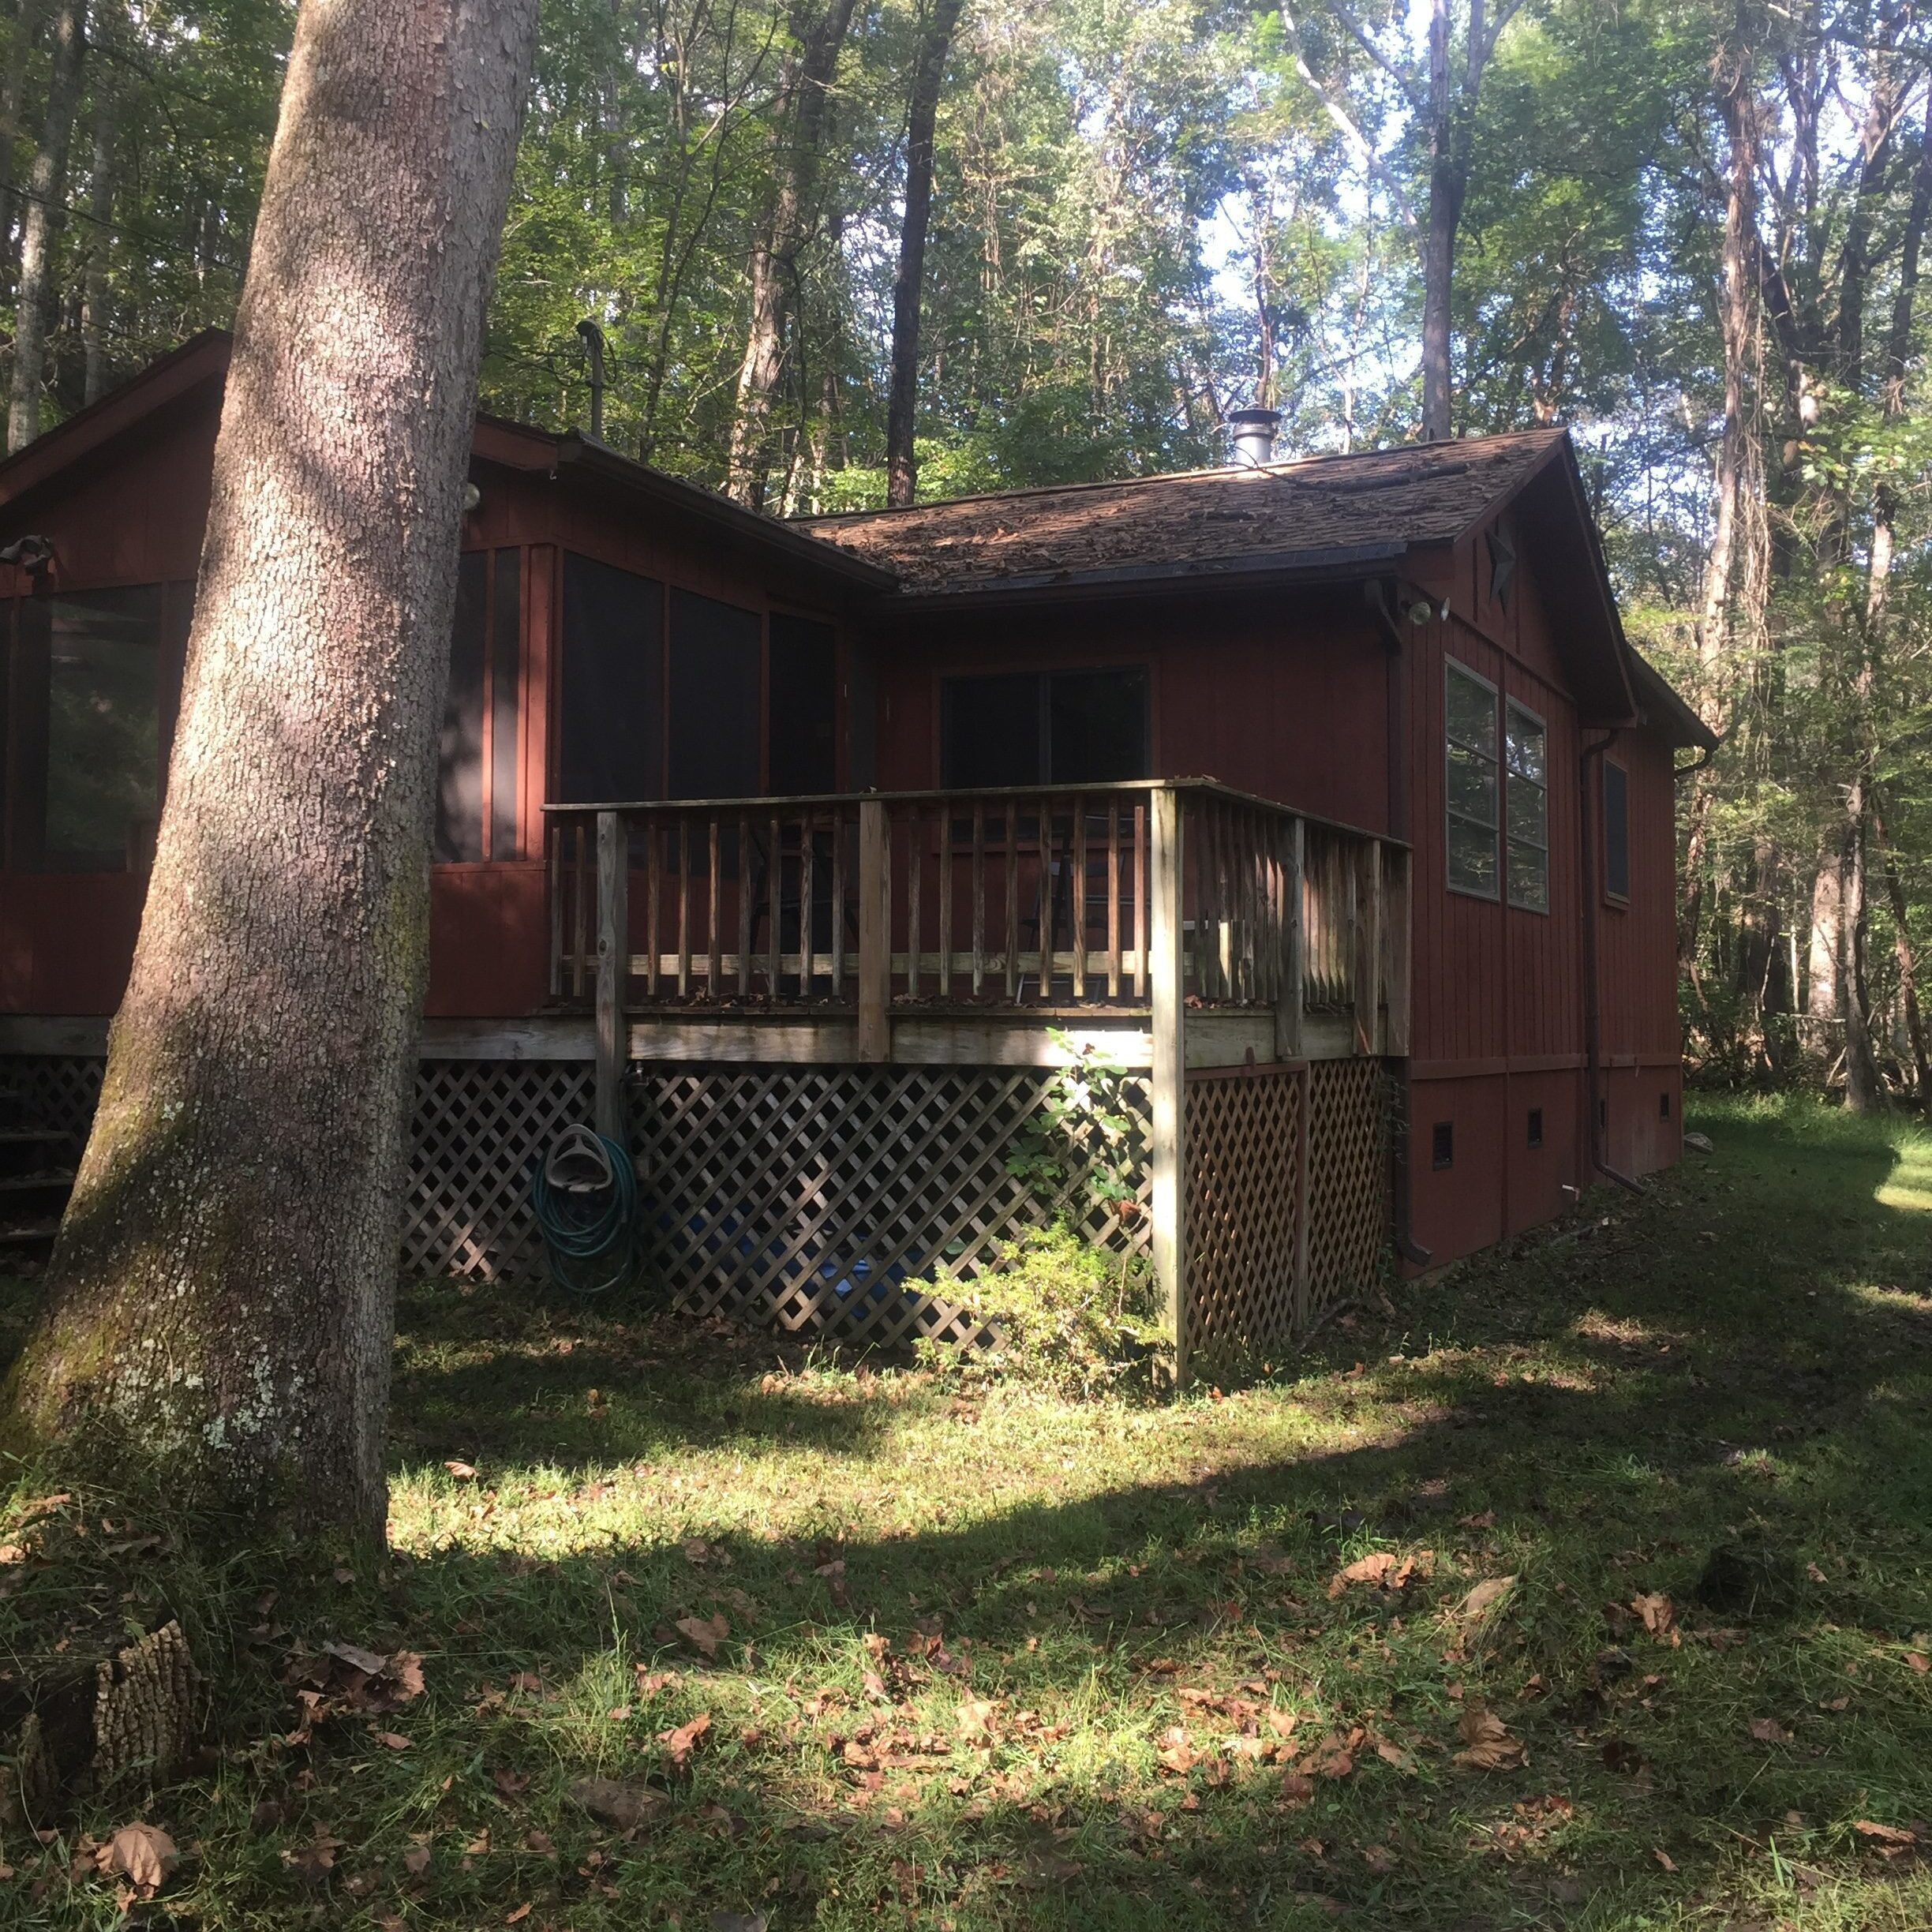 Pet and Kid Friendly, RV Hookup available, Privacy and Seclusion